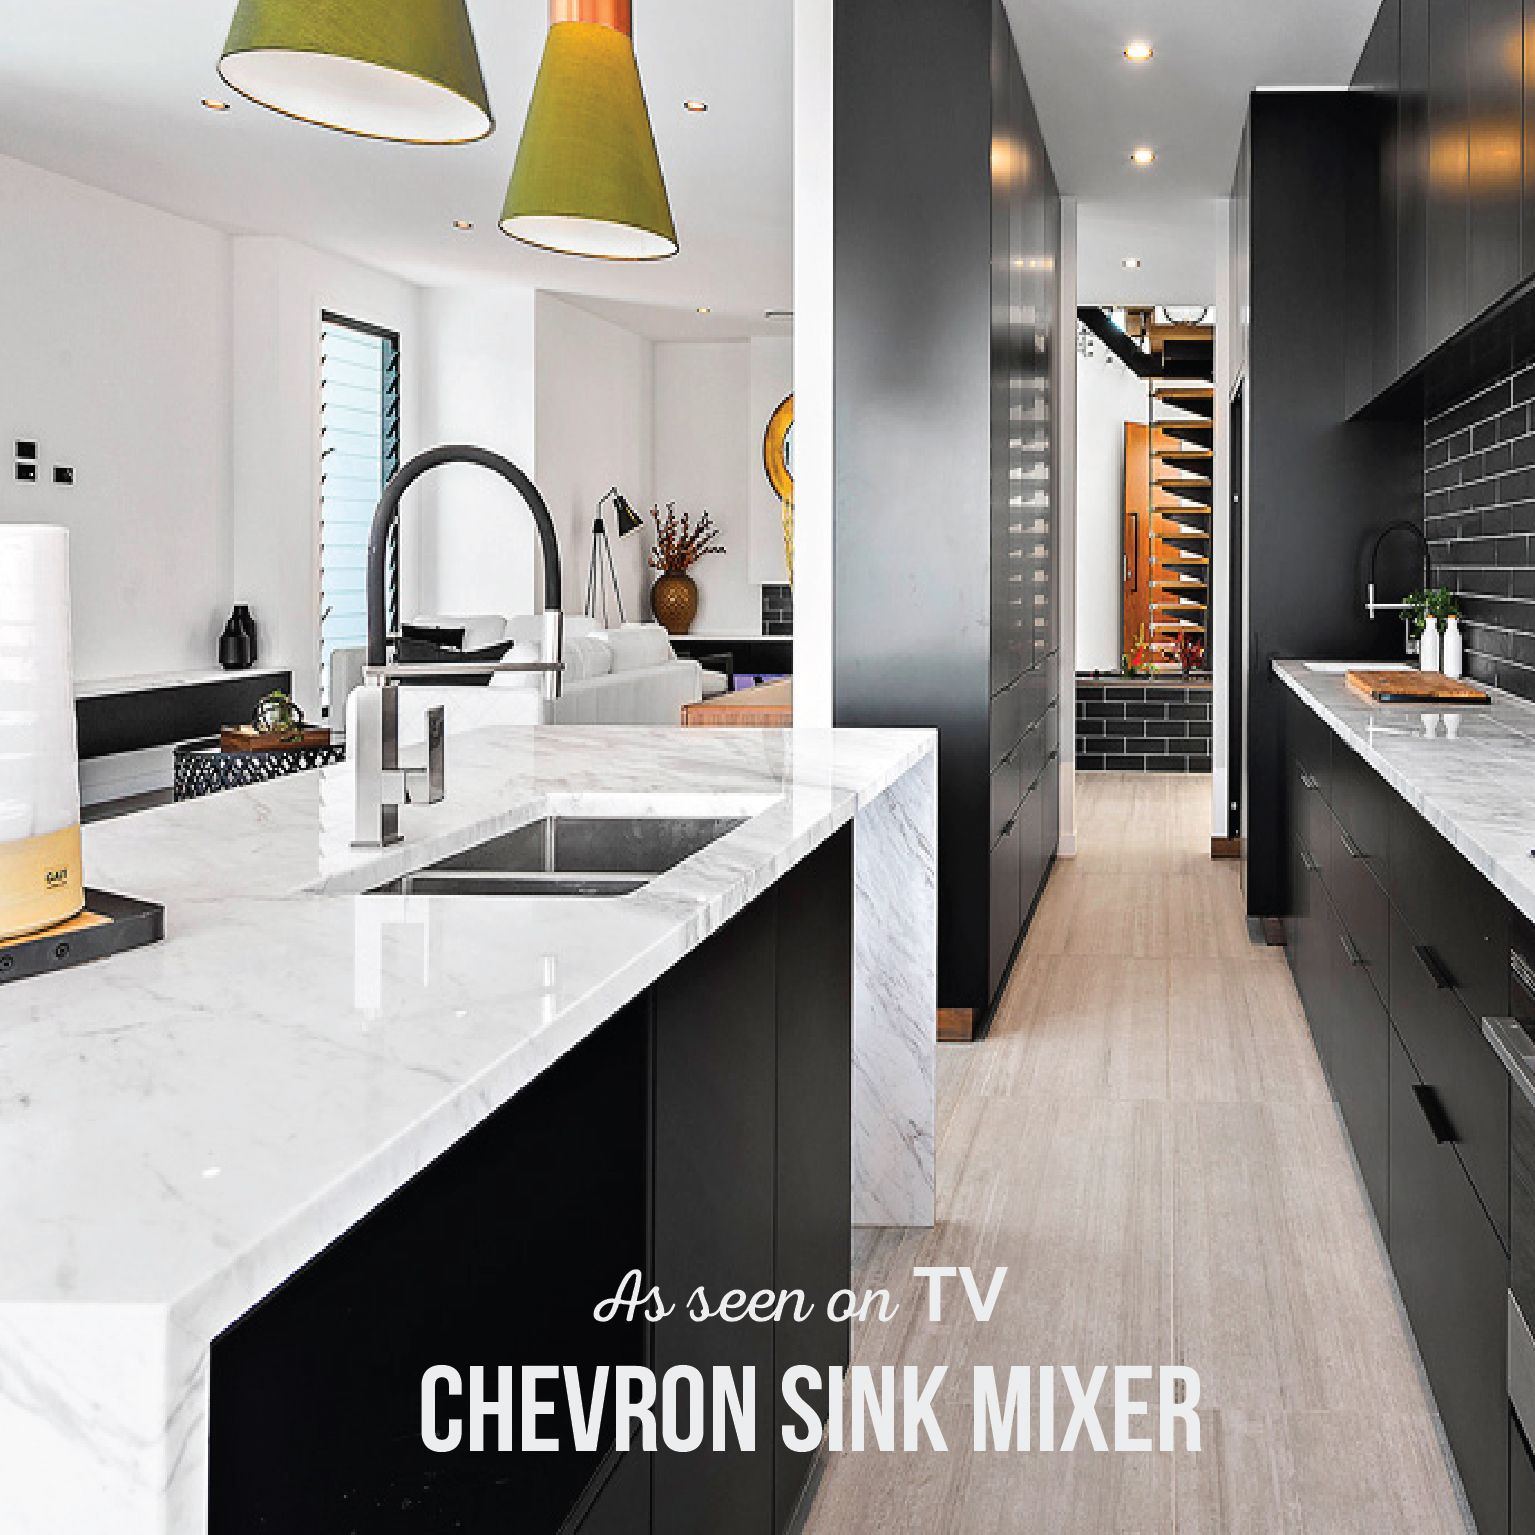 Awe Inspiring Our Chevron Pull Out Sink Mixer In This Beautiful Island Alphanode Cool Chair Designs And Ideas Alphanodeonline